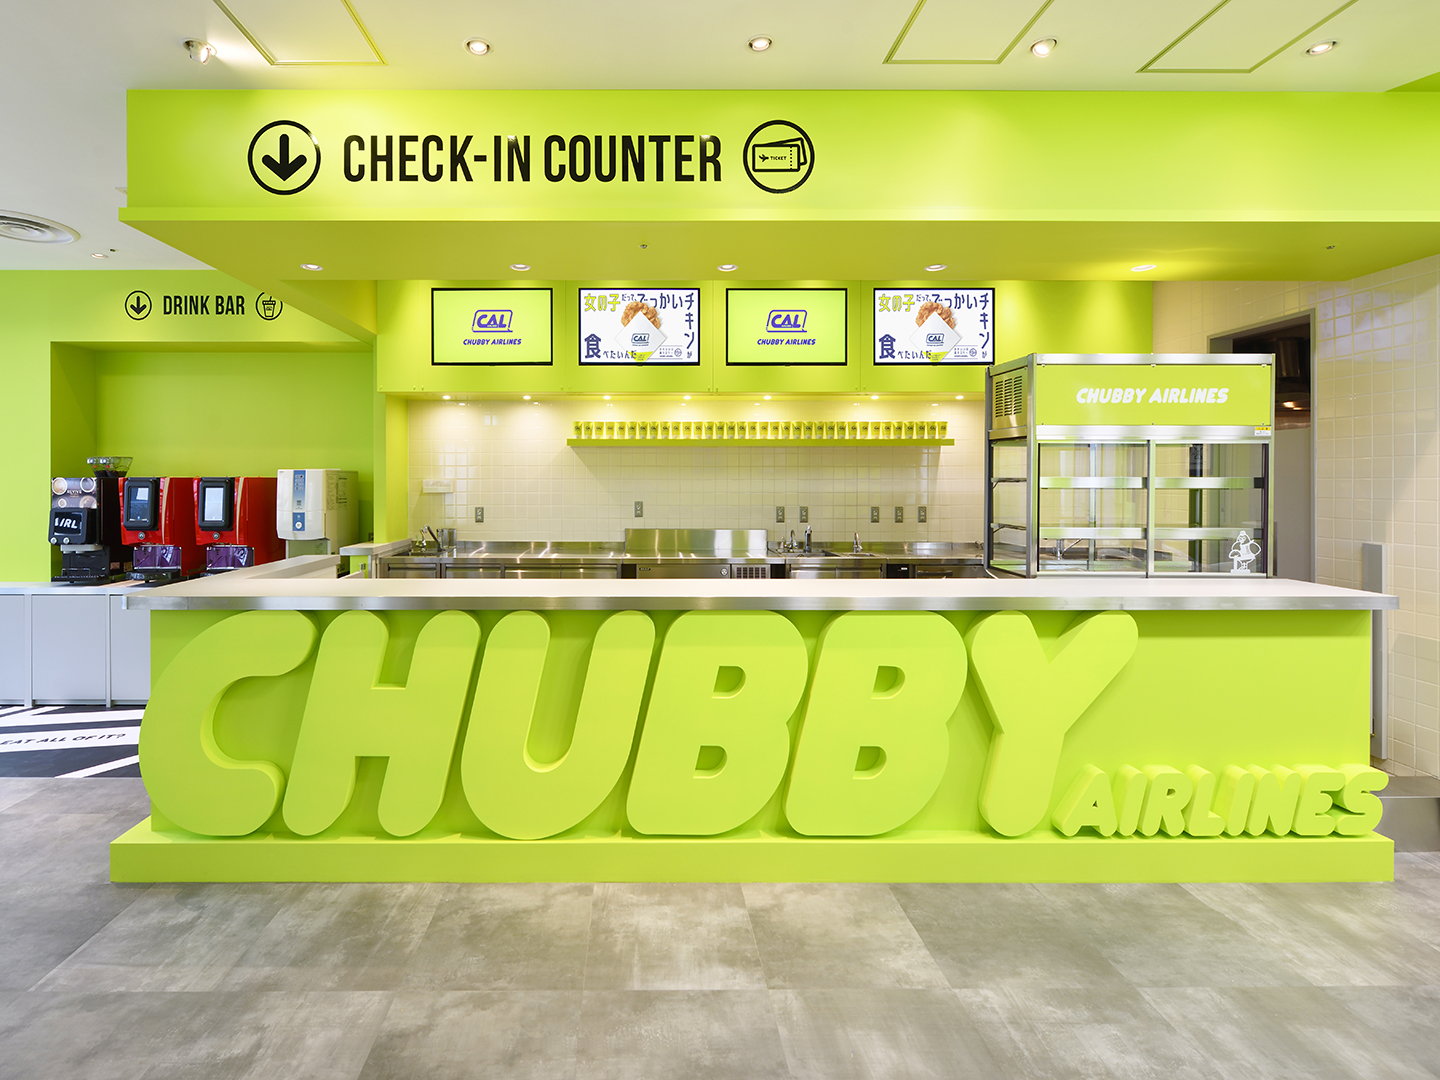 CHUBBY AIRLINESレジカウンター